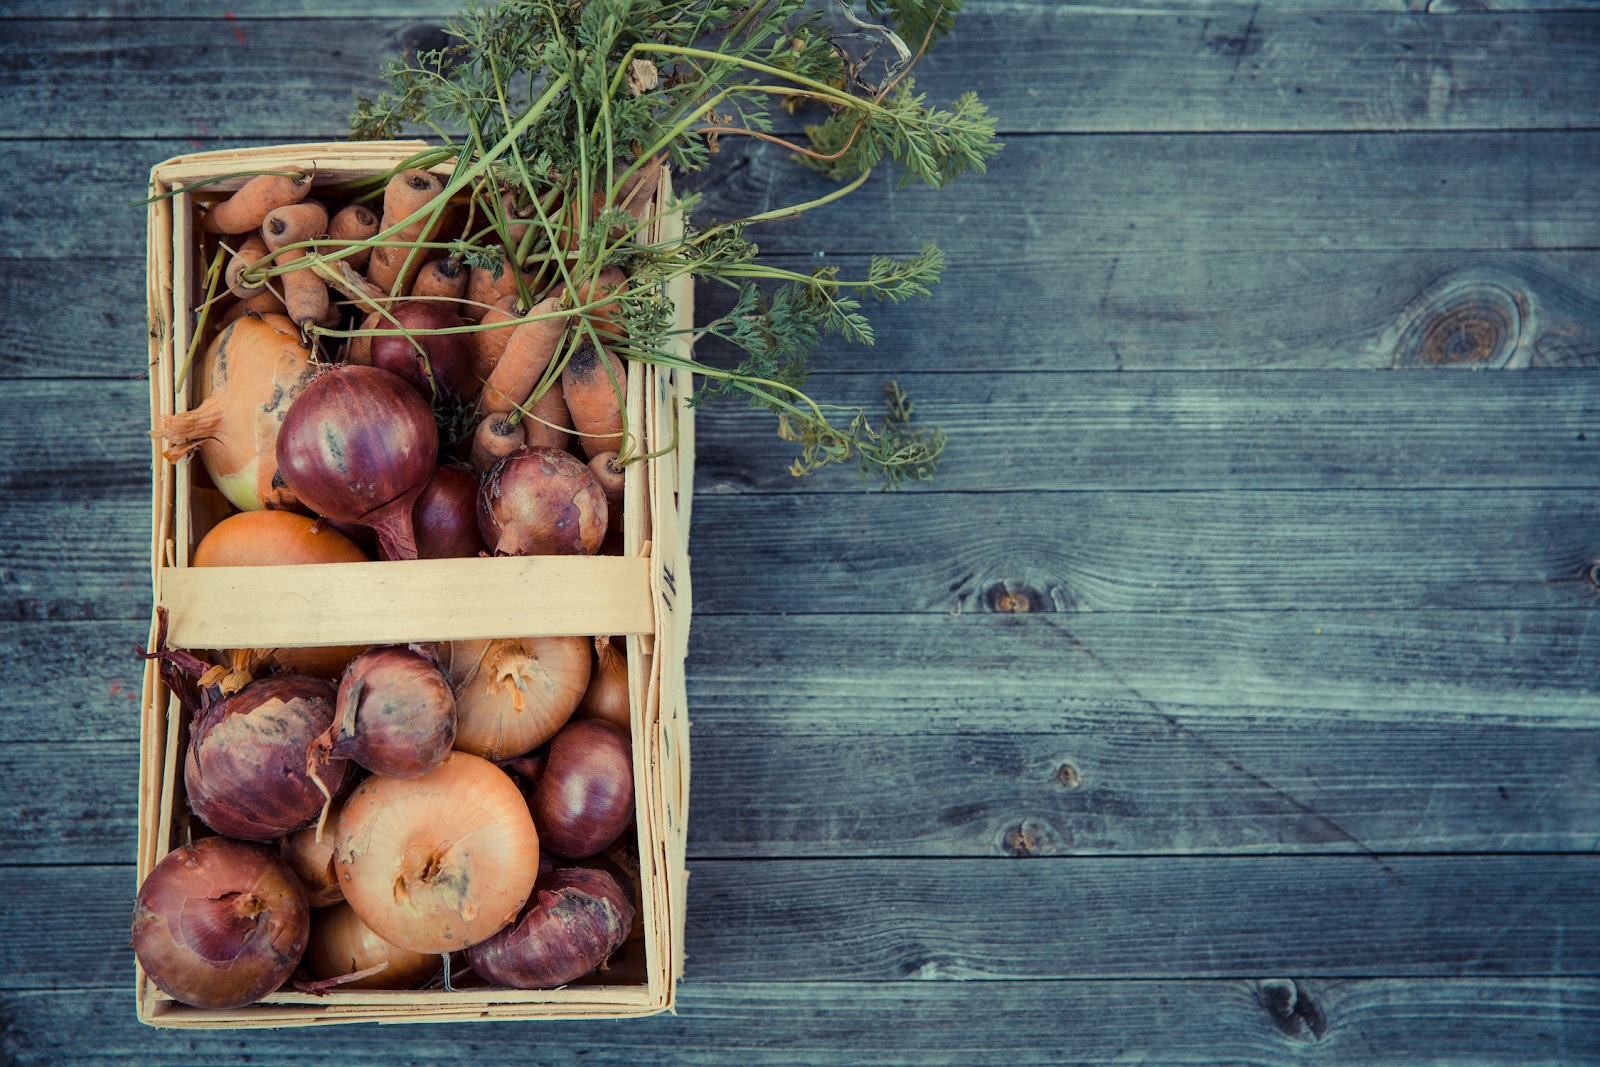 packaging and leftovers help with an eco-friendly diet